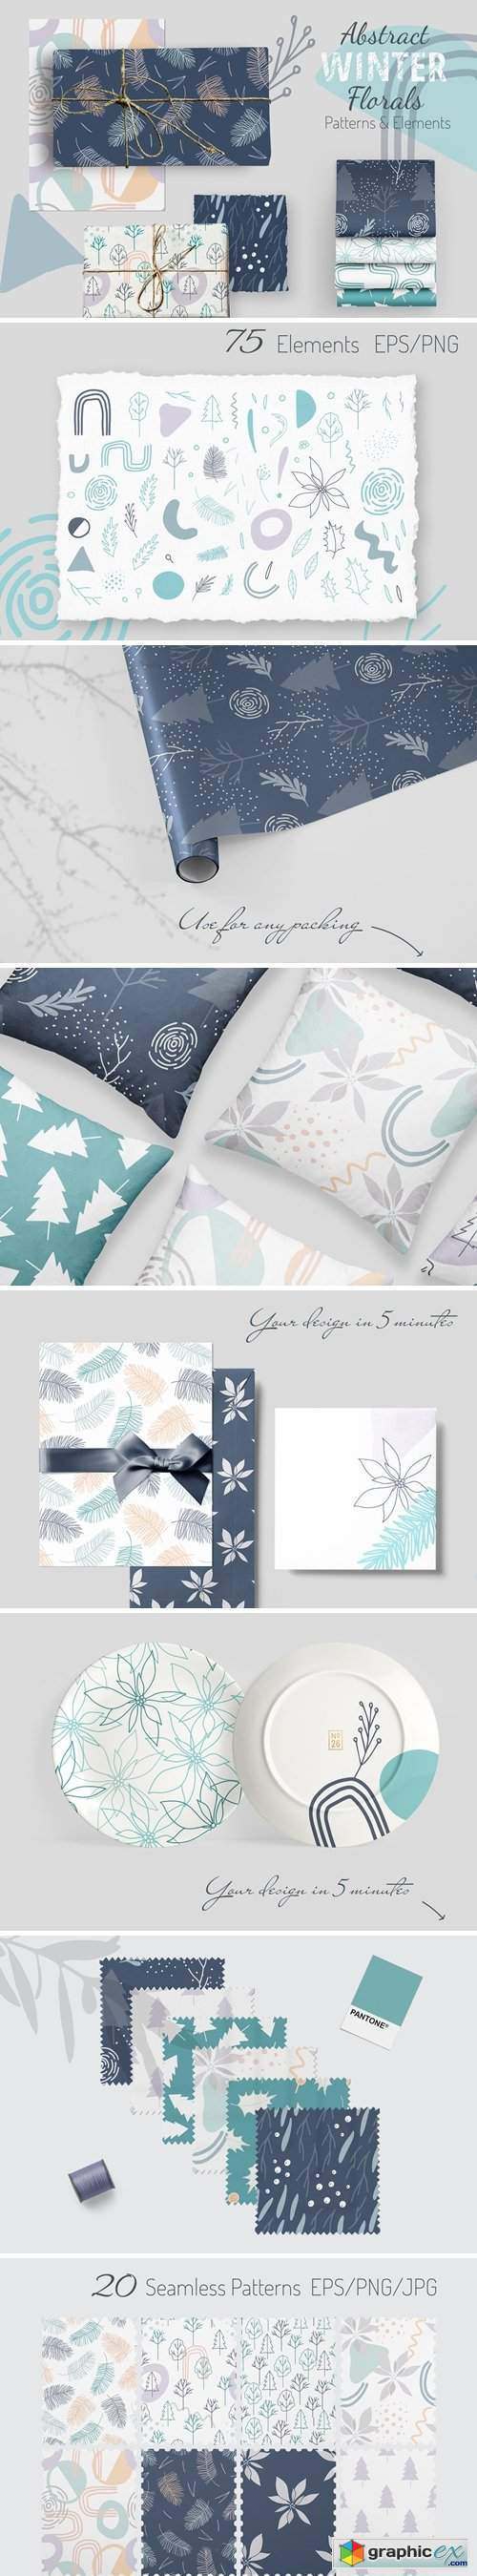 Abstract winter florals